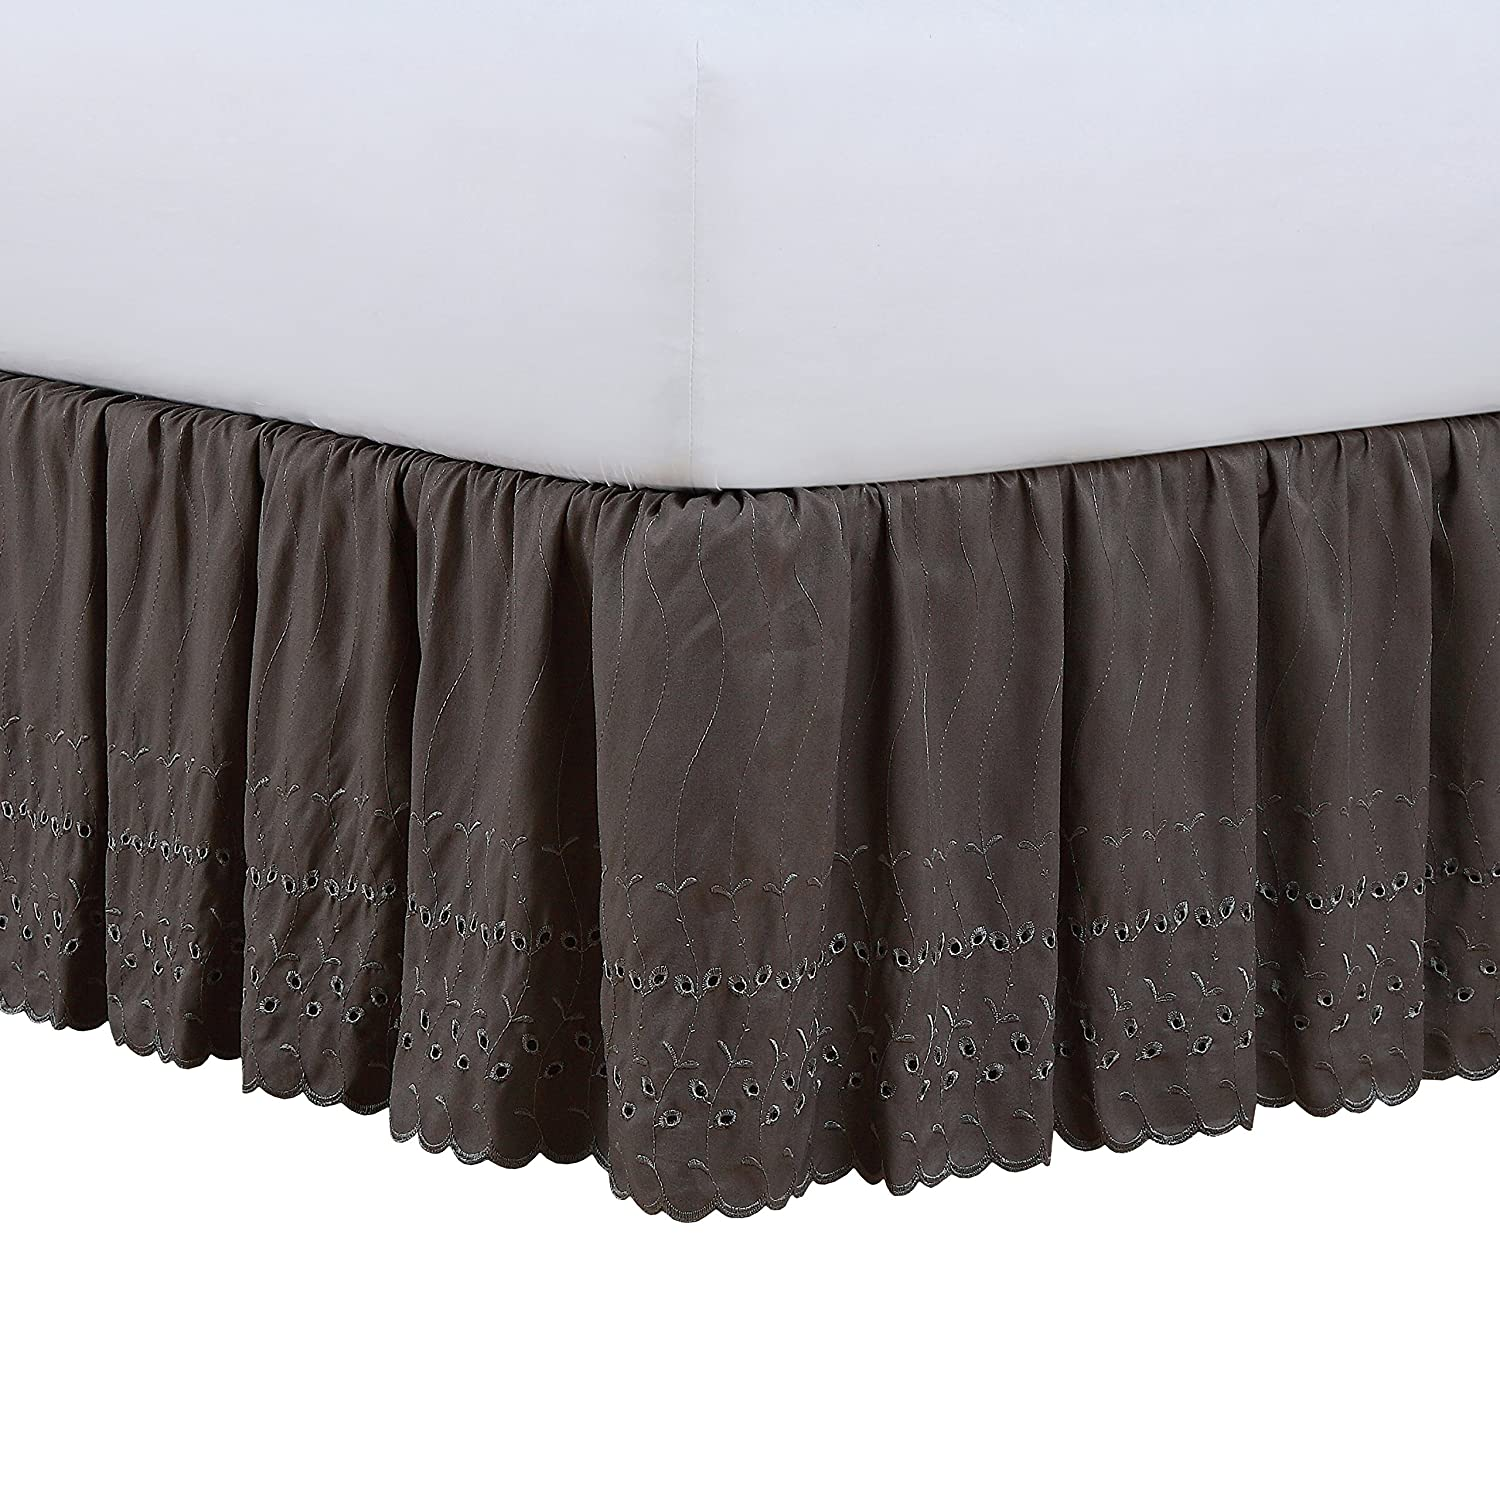 Cal King Bed Skirt.Fresh Ideas Ruffled Eyelet Bedskirt Cal King Grey